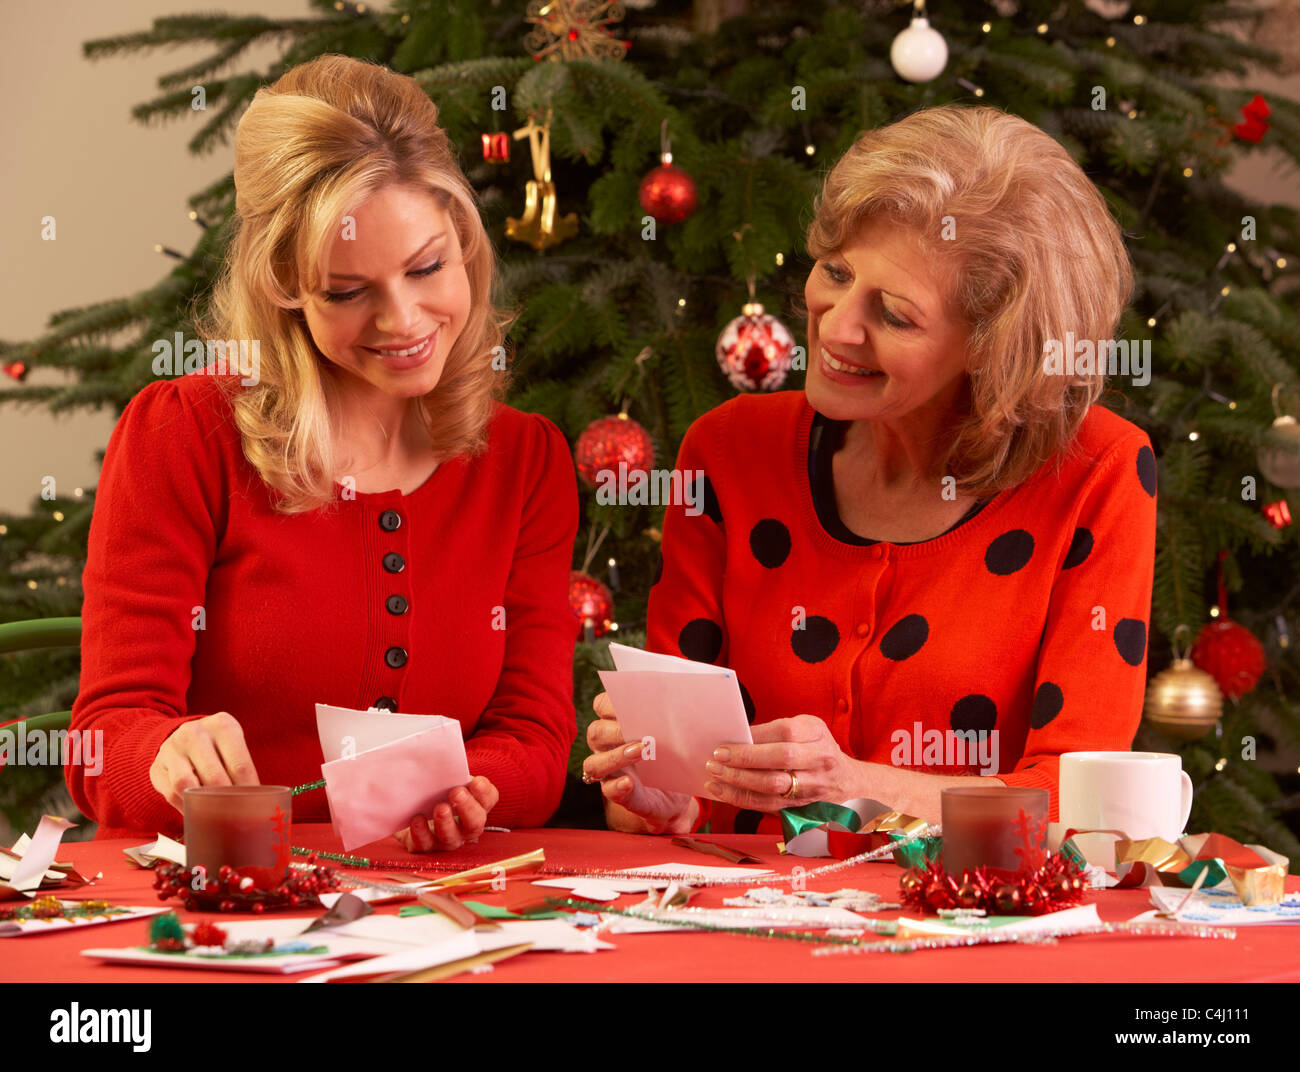 Women Making Christmas Cards At Home - Stock Image